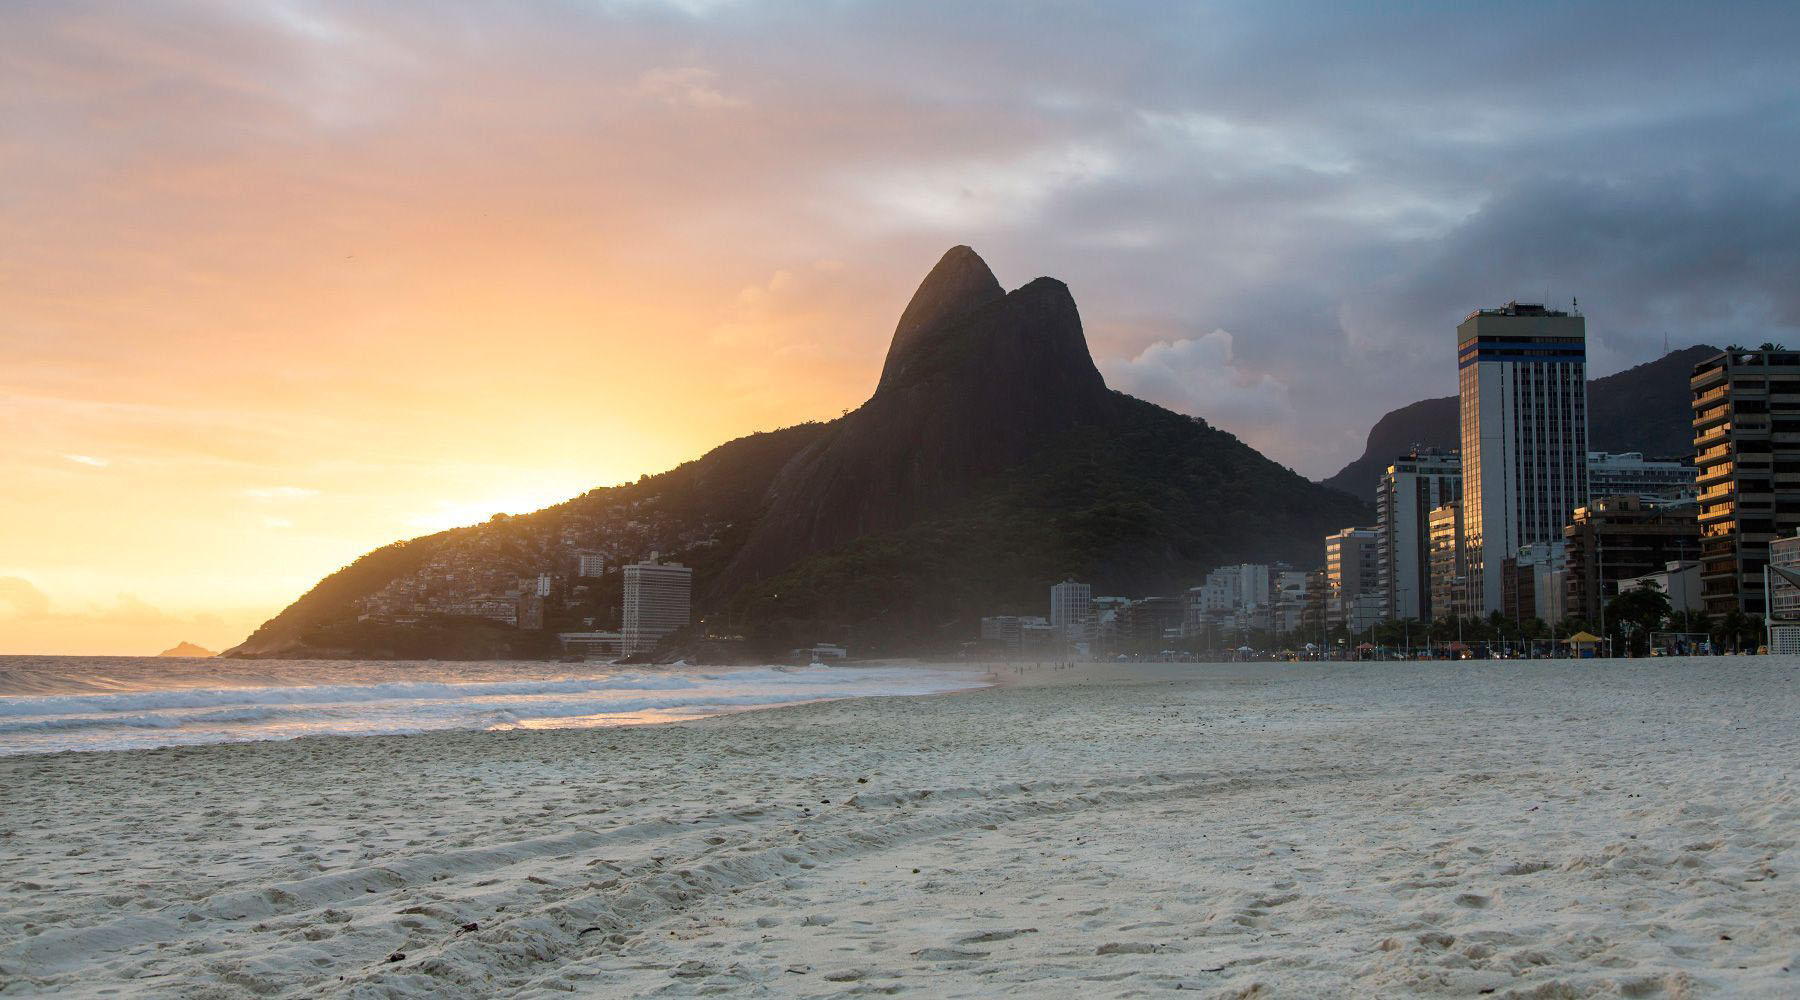 image of the copacabana beach in brazil with sand and cityscape